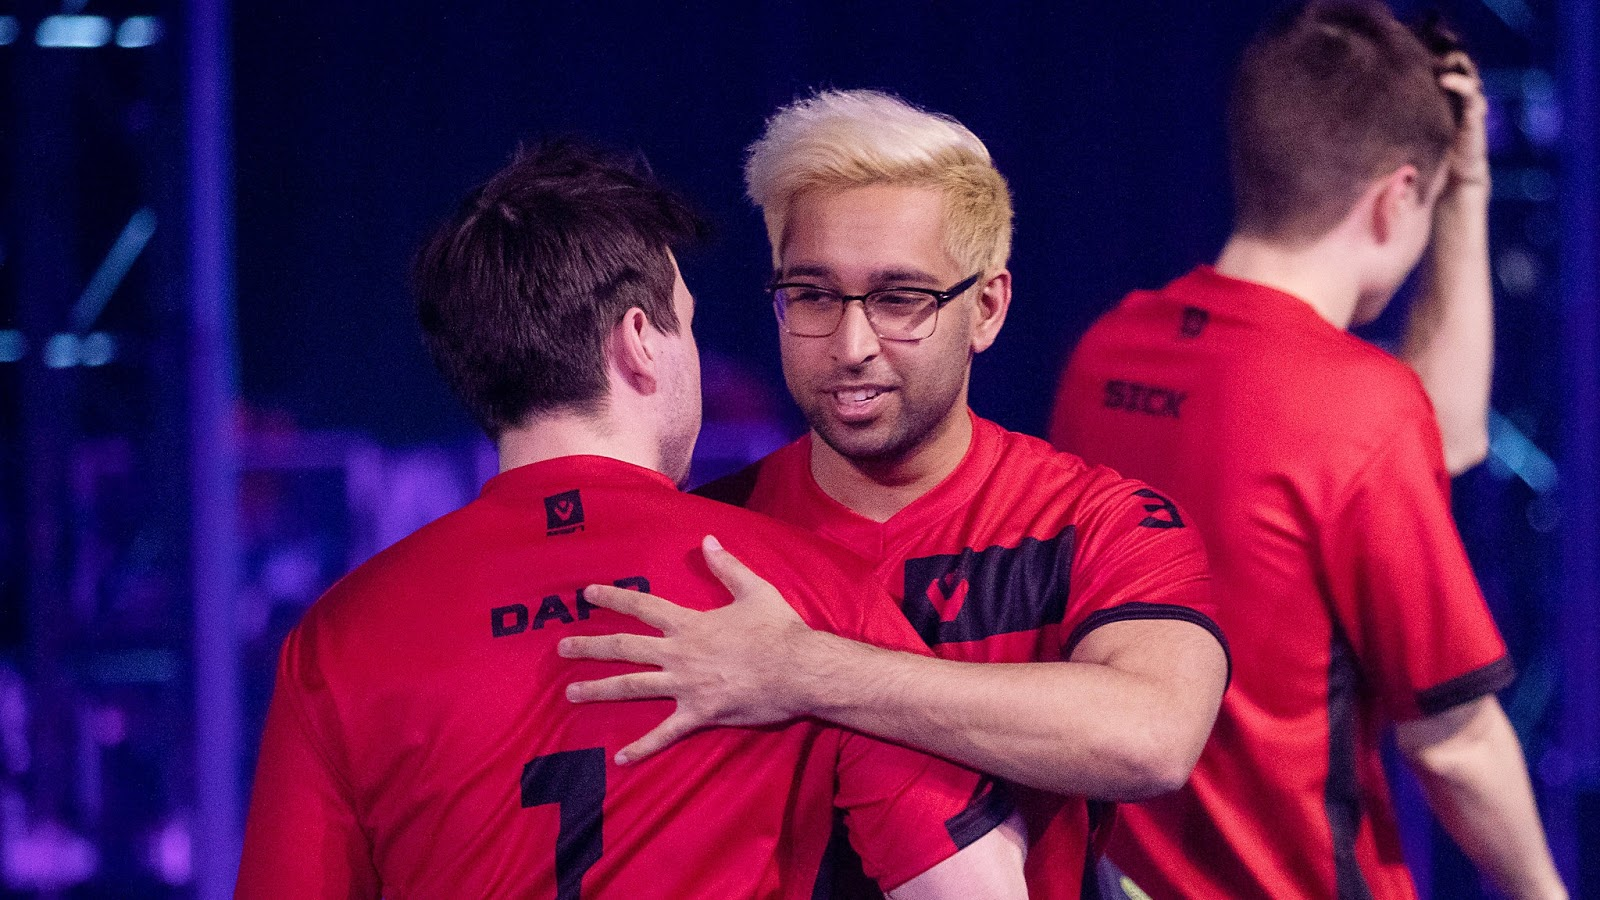 North American esports earned an important W over Europe